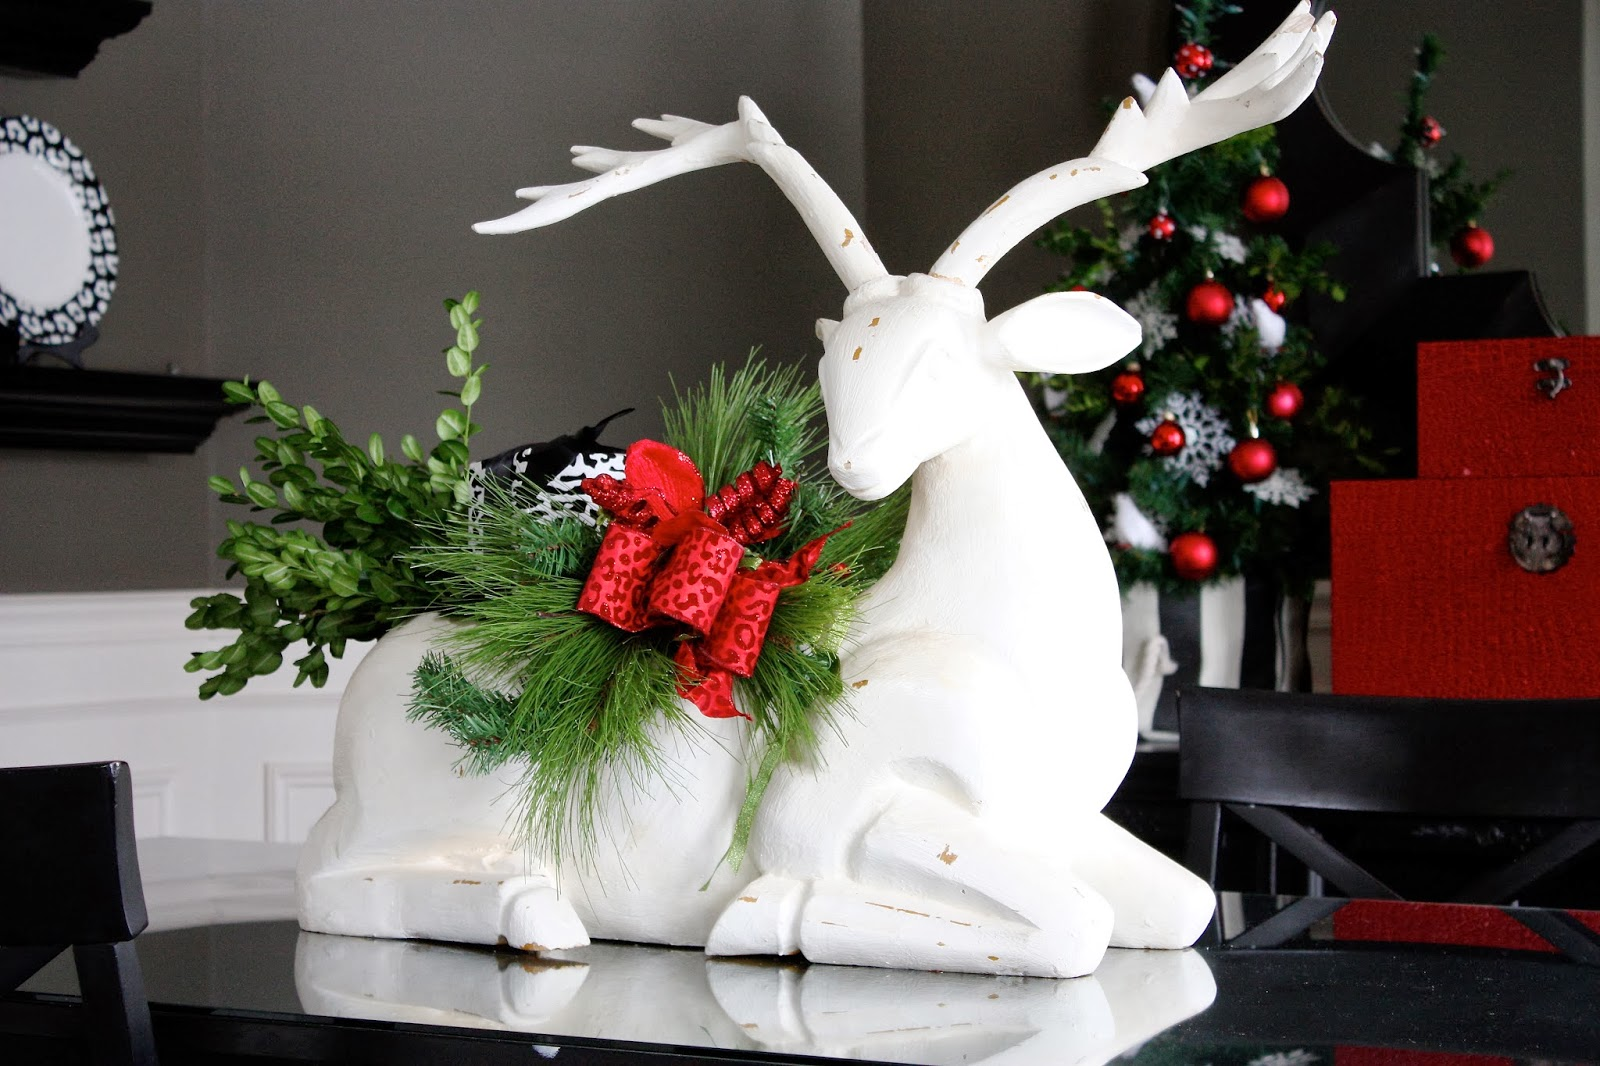 Better homes and gardens christmas decorating ideas - Christmas Decorating Ideas Better Homes And Gardens